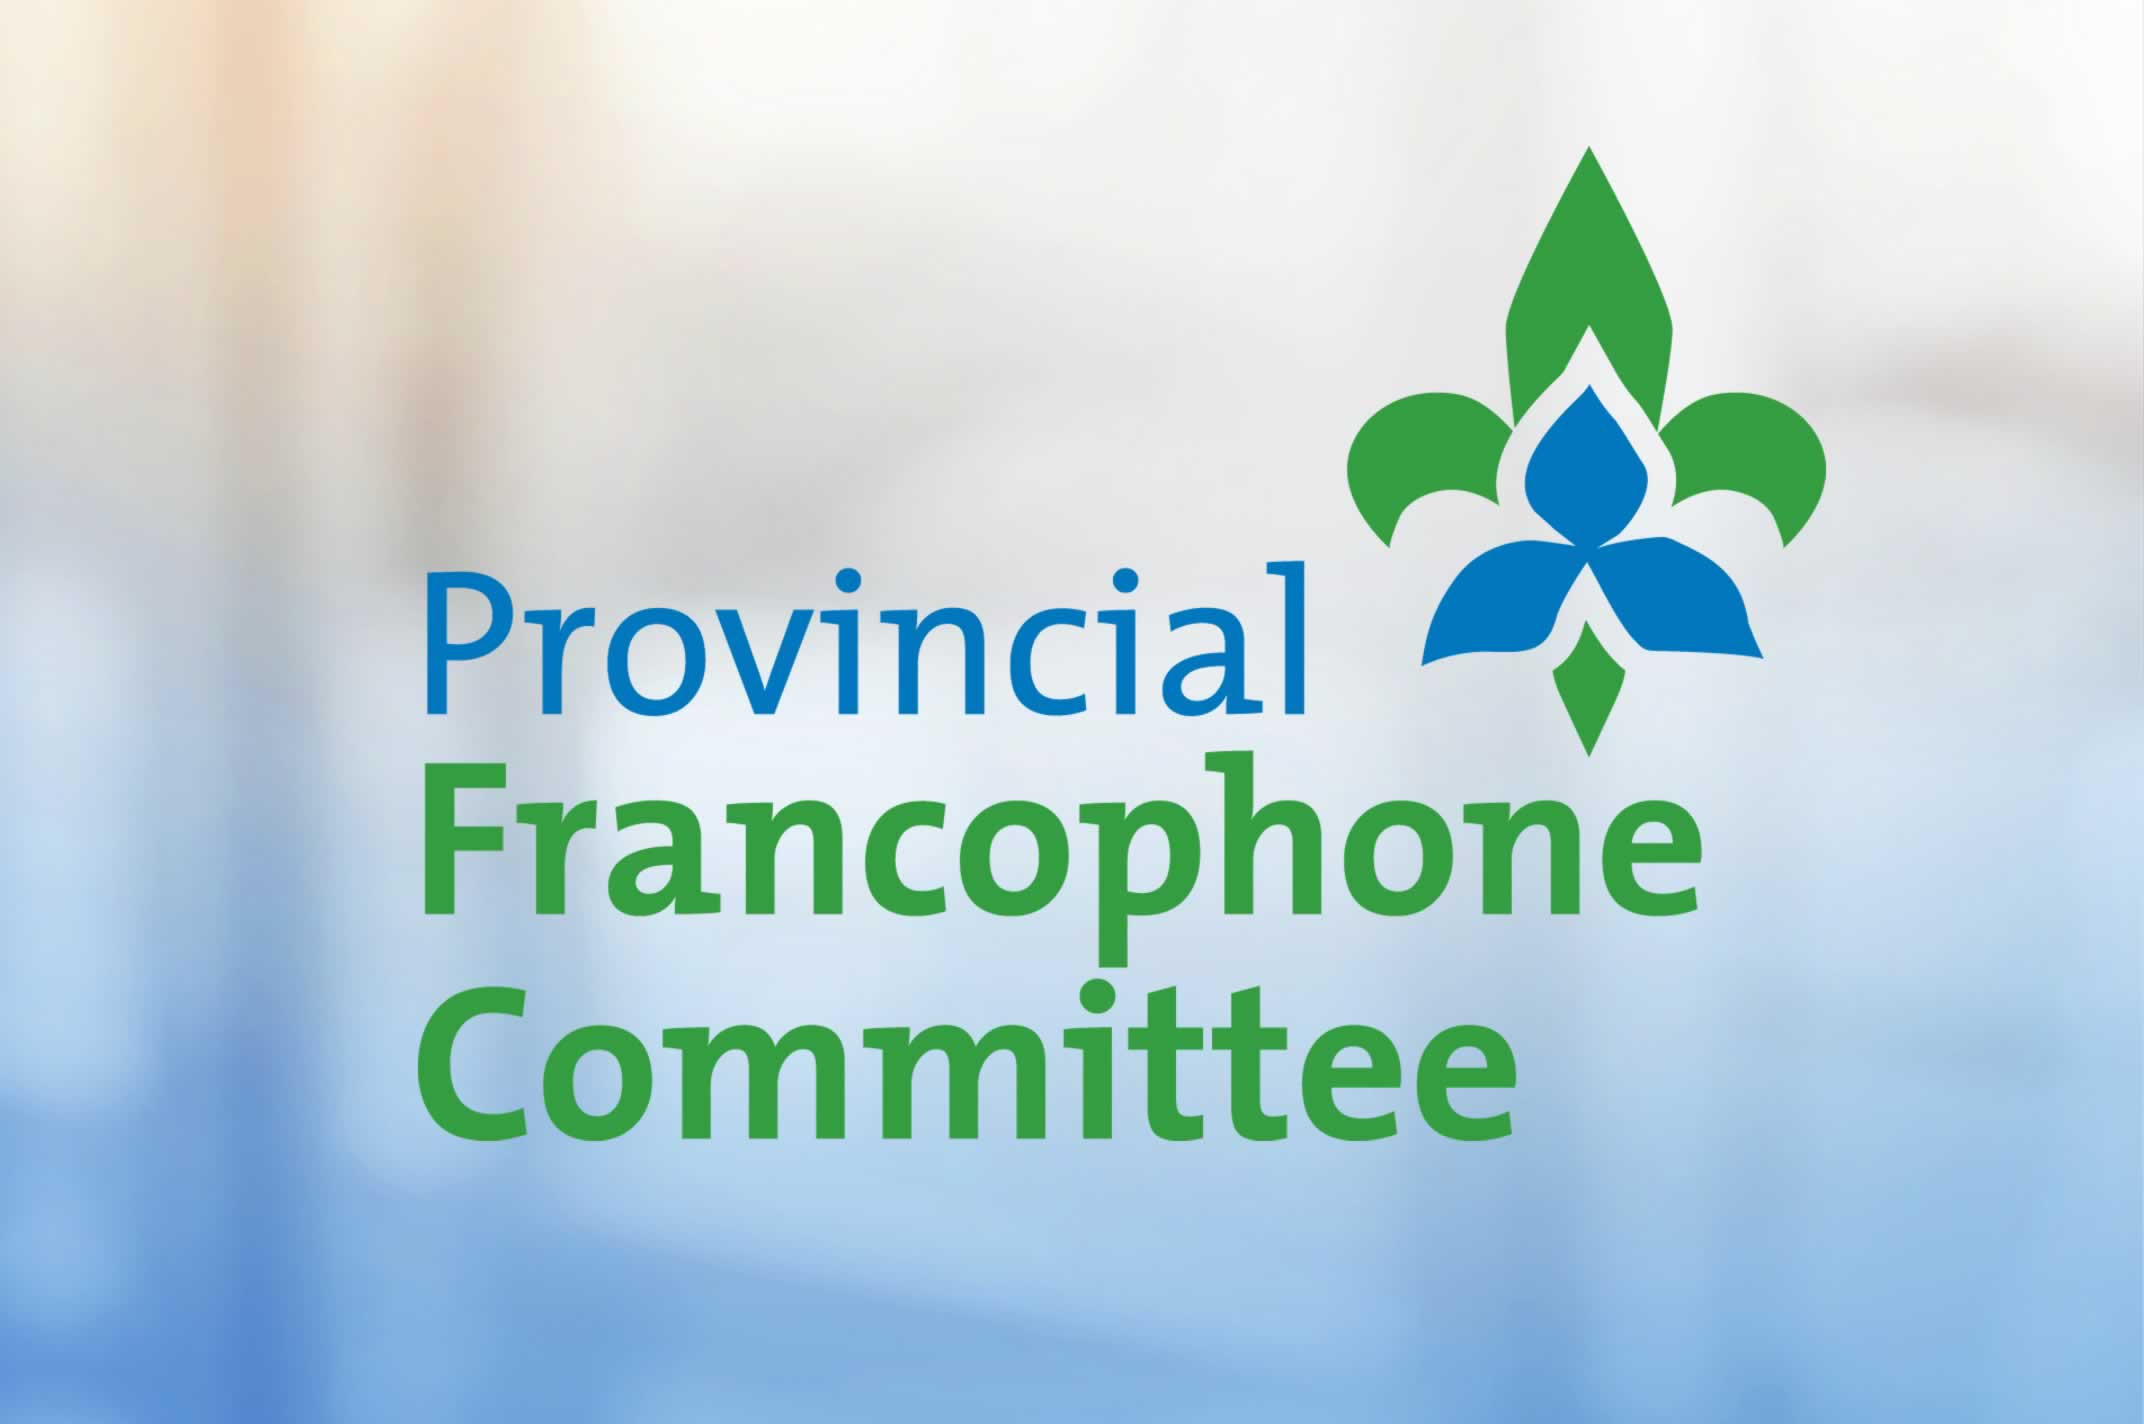 Provincial Francophone committee